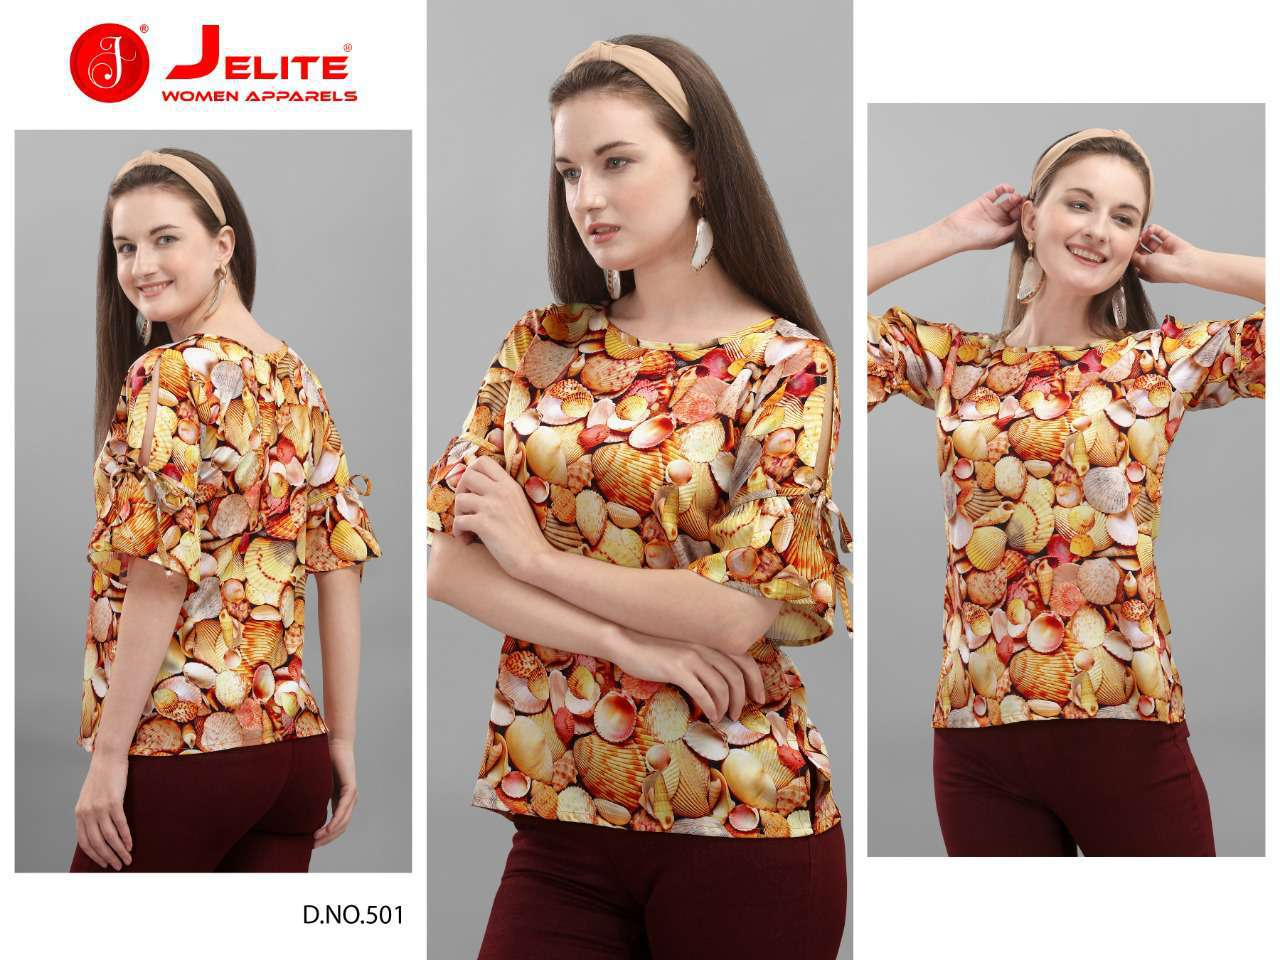 Jelite Orchid Tops Wholesale Catalog 8 Pcs 1 - Jelite Orchid Tops Wholesale Catalog 8 Pcs